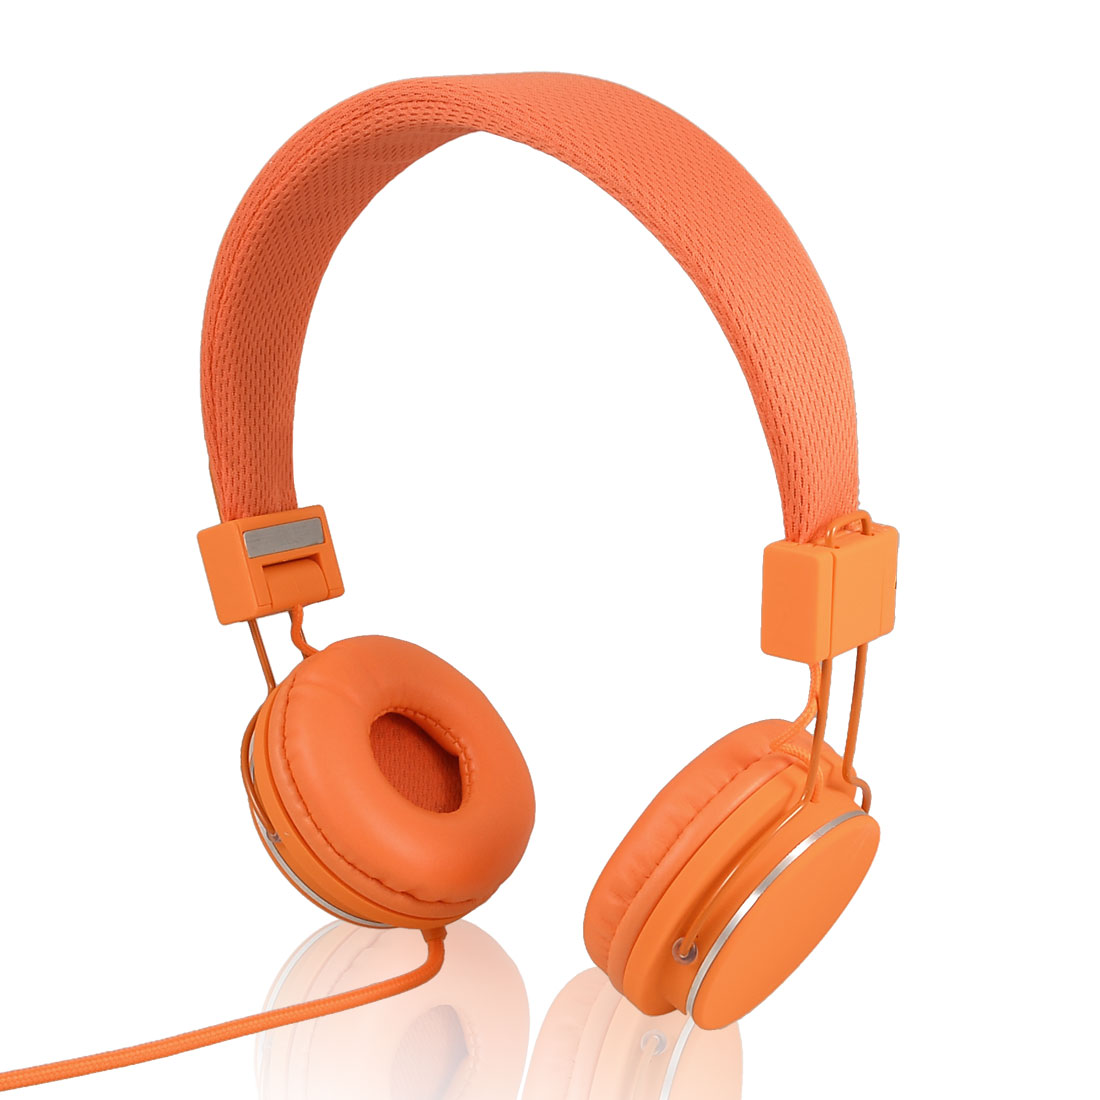 PC Laptop Orange Wired Foldable Stereo 3.5mm Headphone Headset with Mic